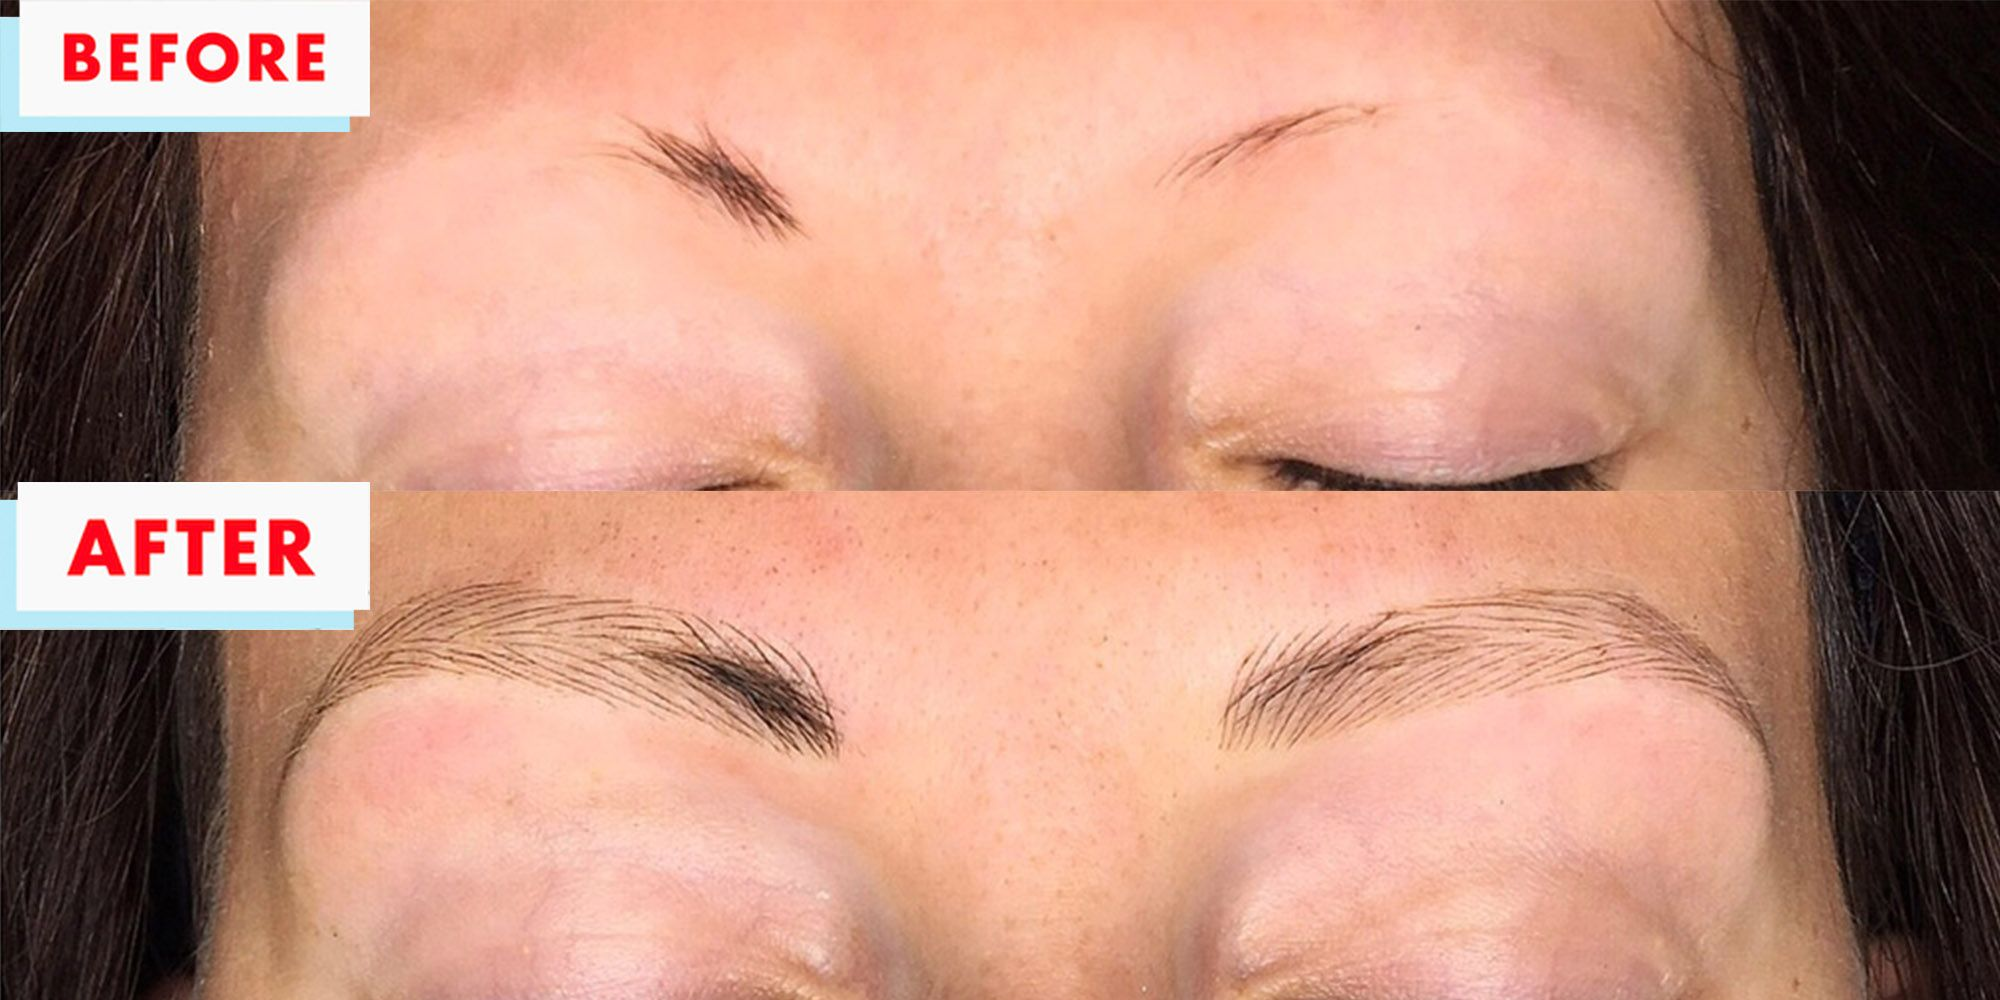 What Is Eyebrow Microblading - How to Get Semi-Permanent